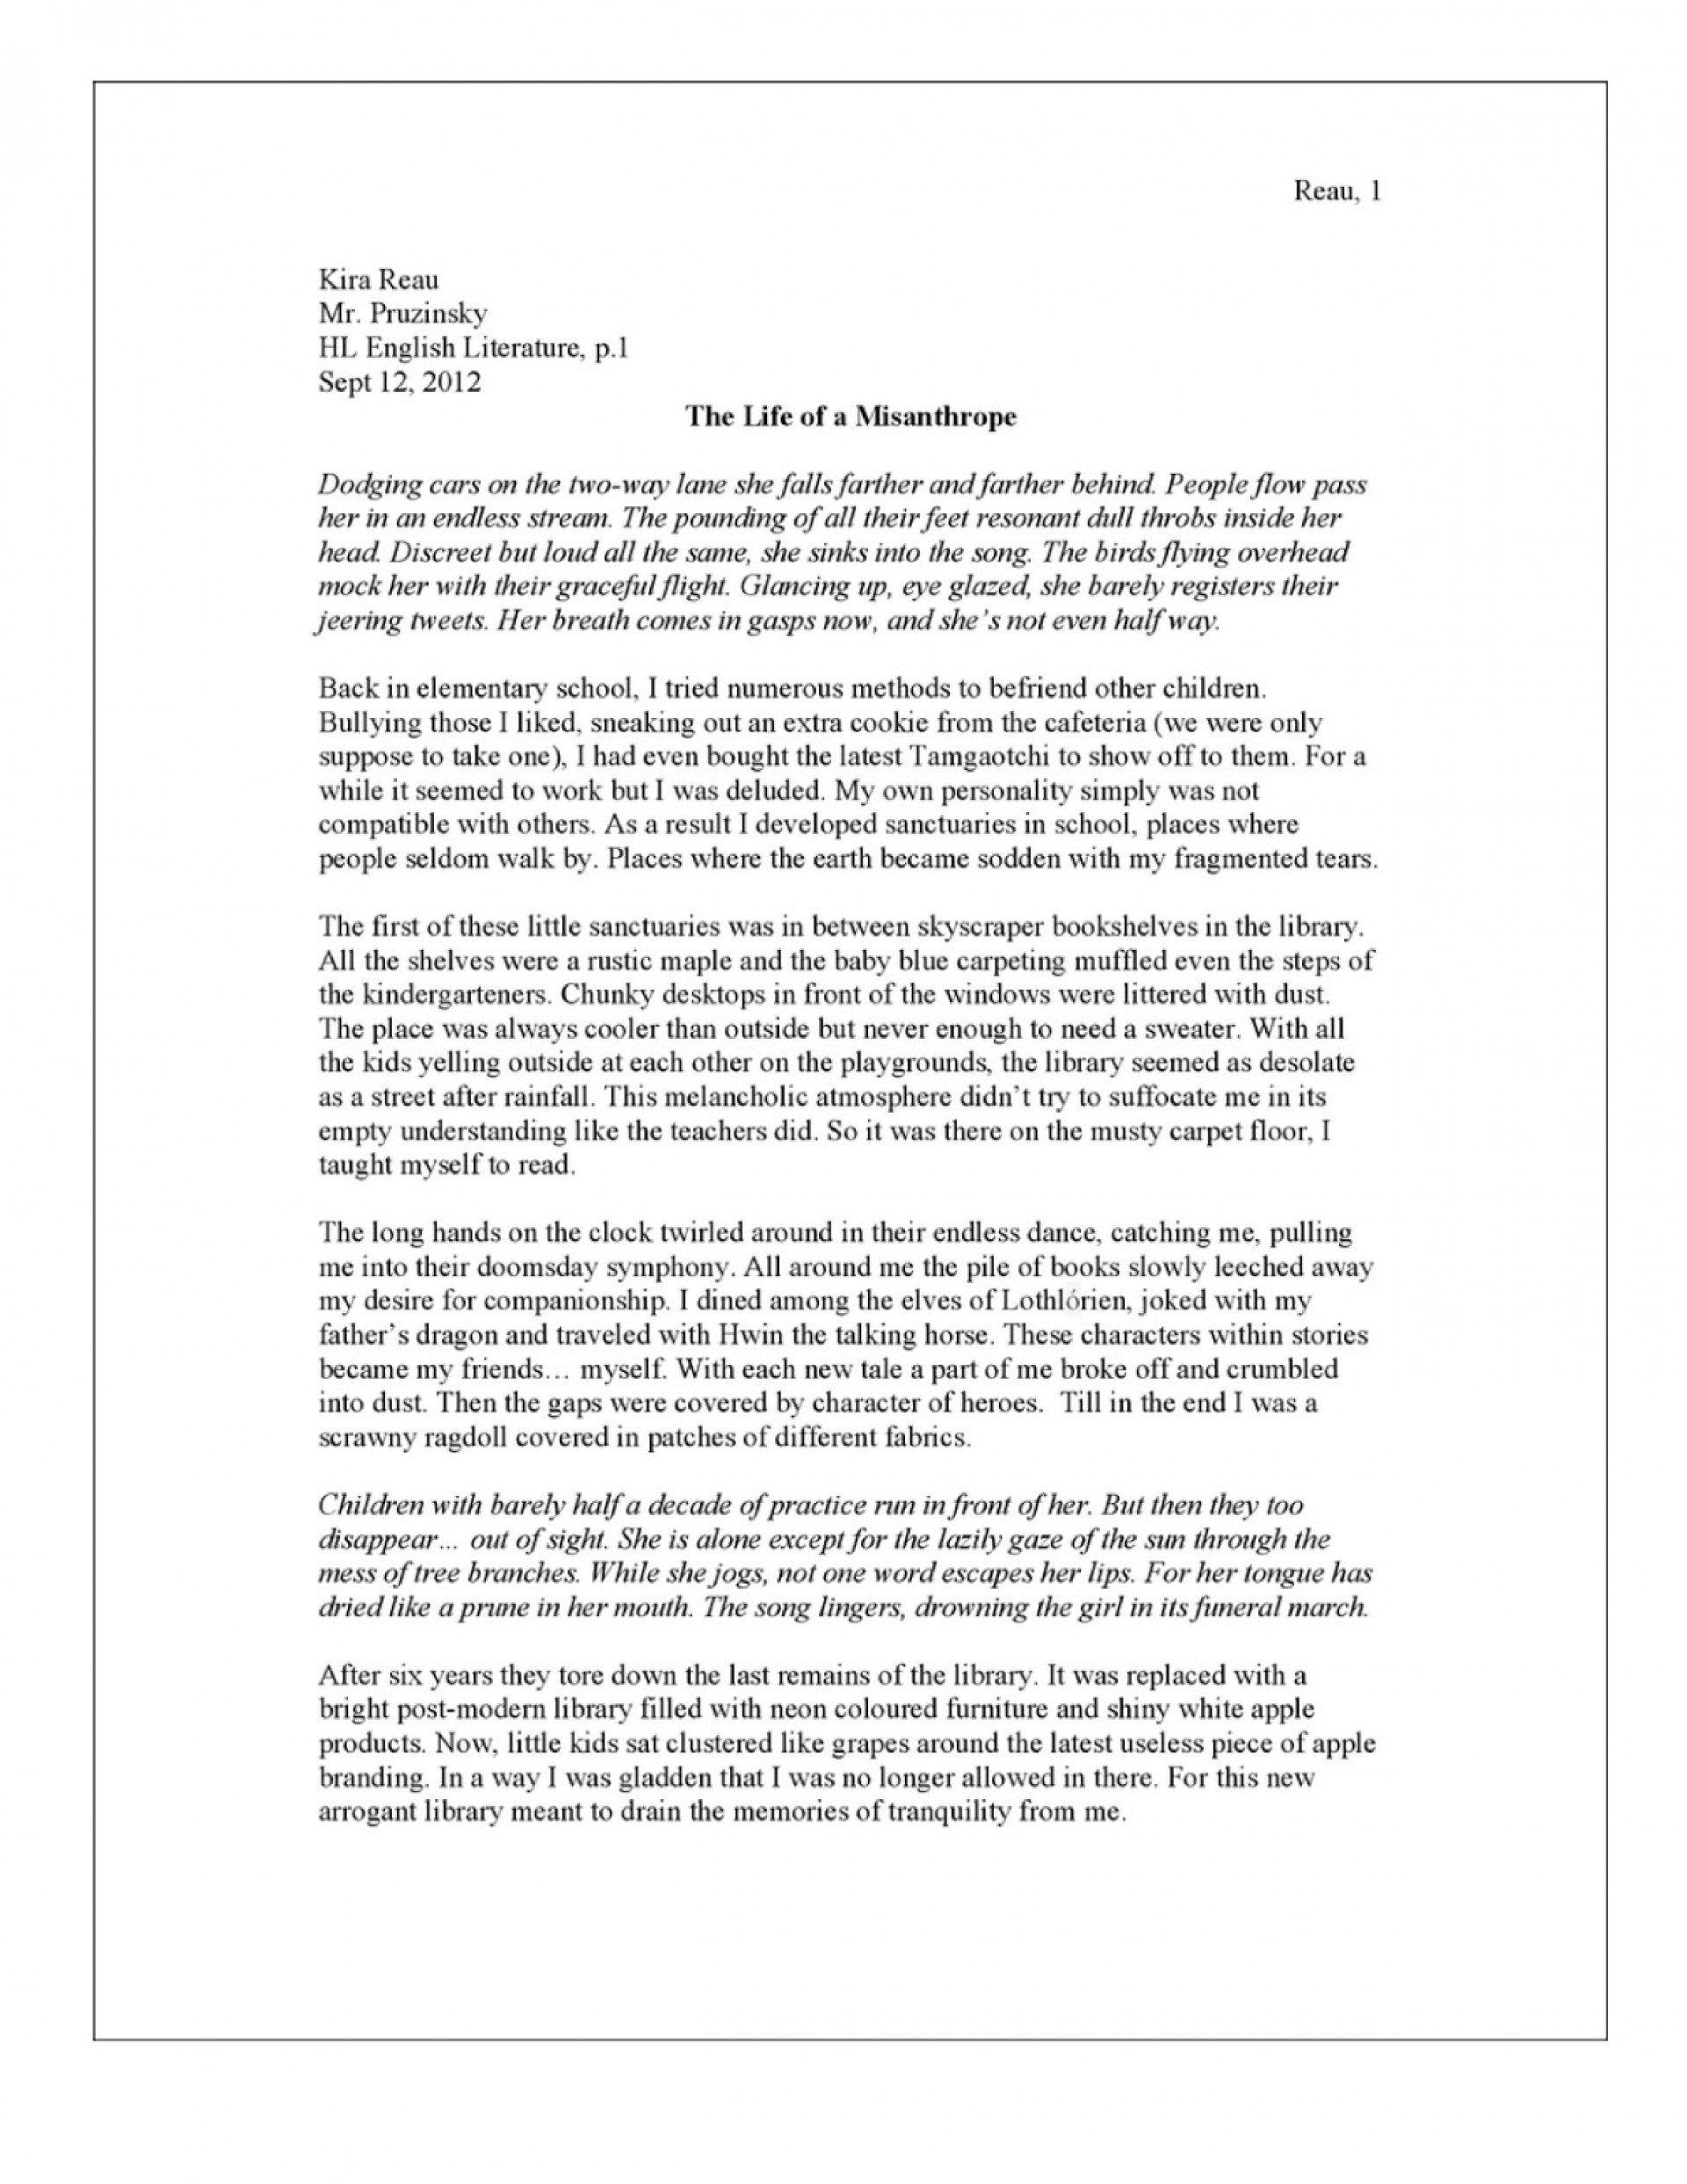 Write me cheap expository essay on usa